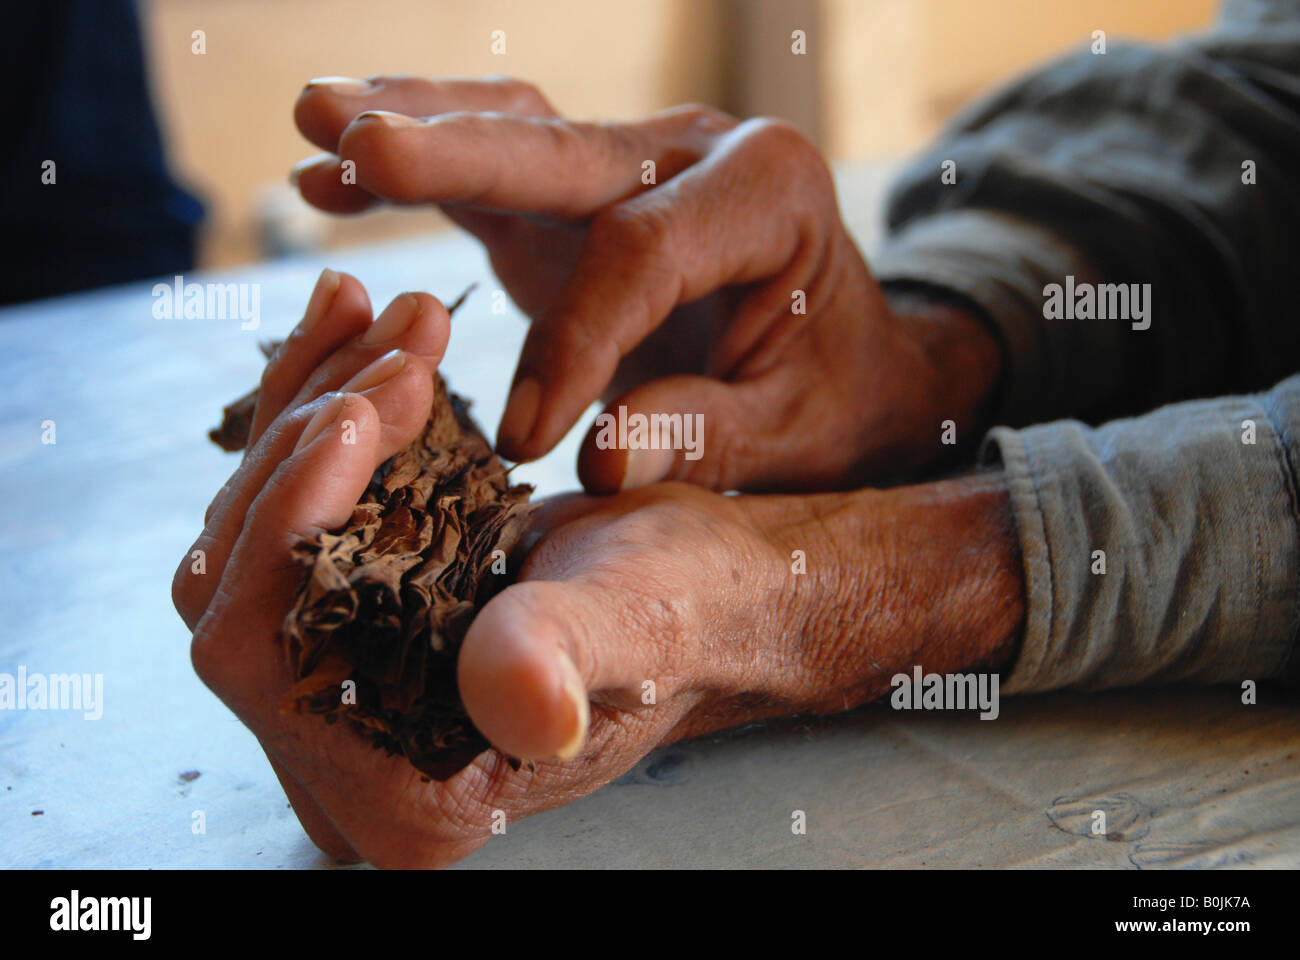 Hands of a tobacco farmer rolling a cigar - Stock Image